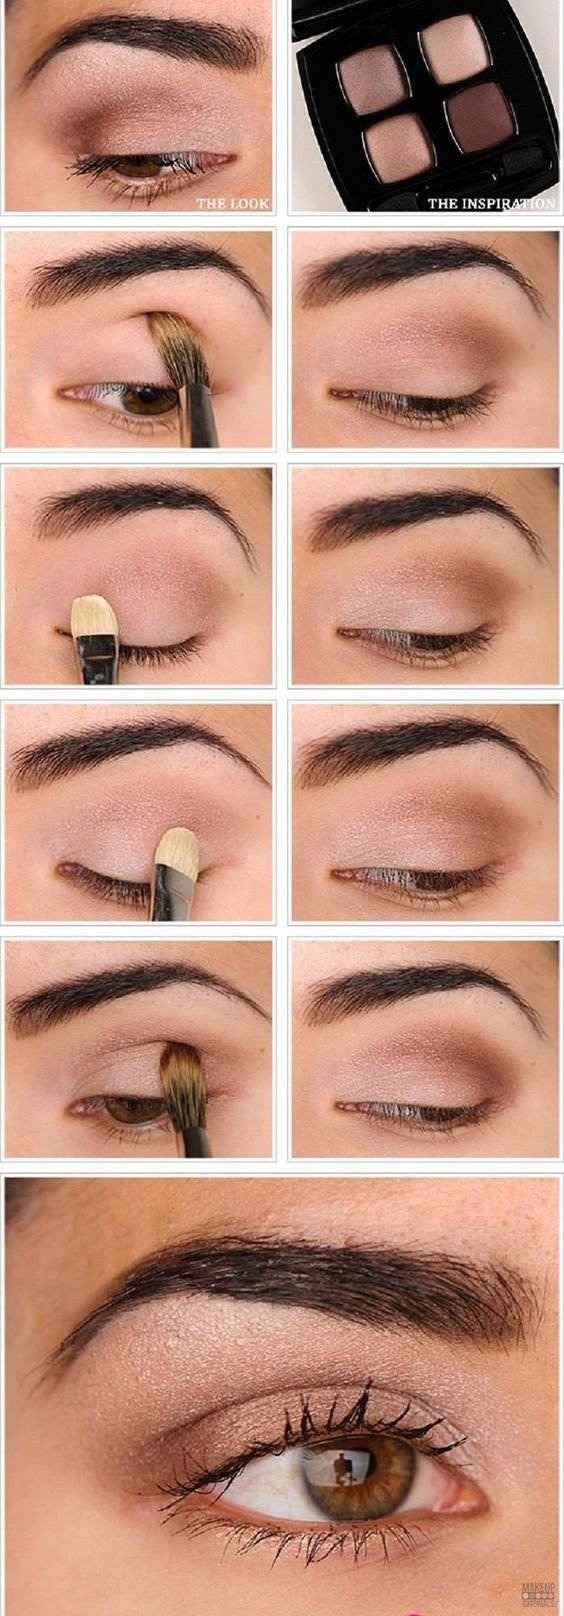 Natural Eye Makeup For Brown Eyes 15 Simple Eye Makeup Ideas For Work Outfits Pretty Designs